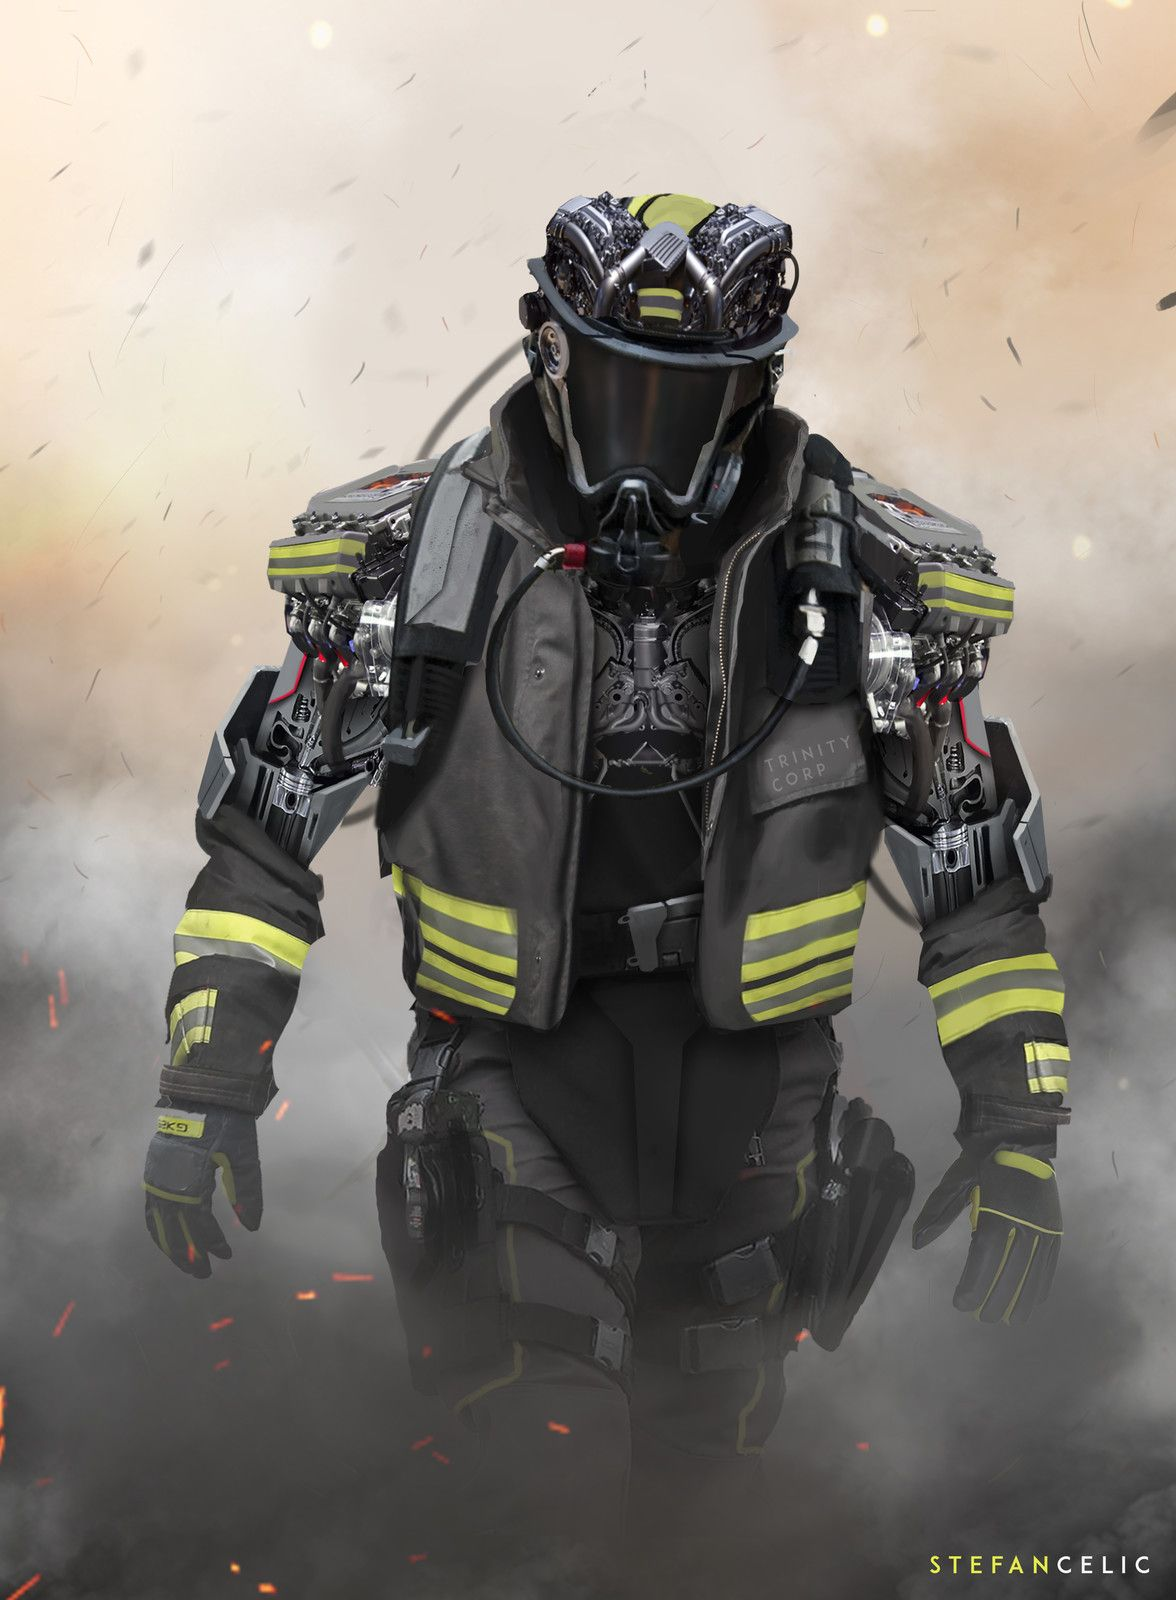 Pin By Daryl Davis On Sci Fi Inspirations Firefighter